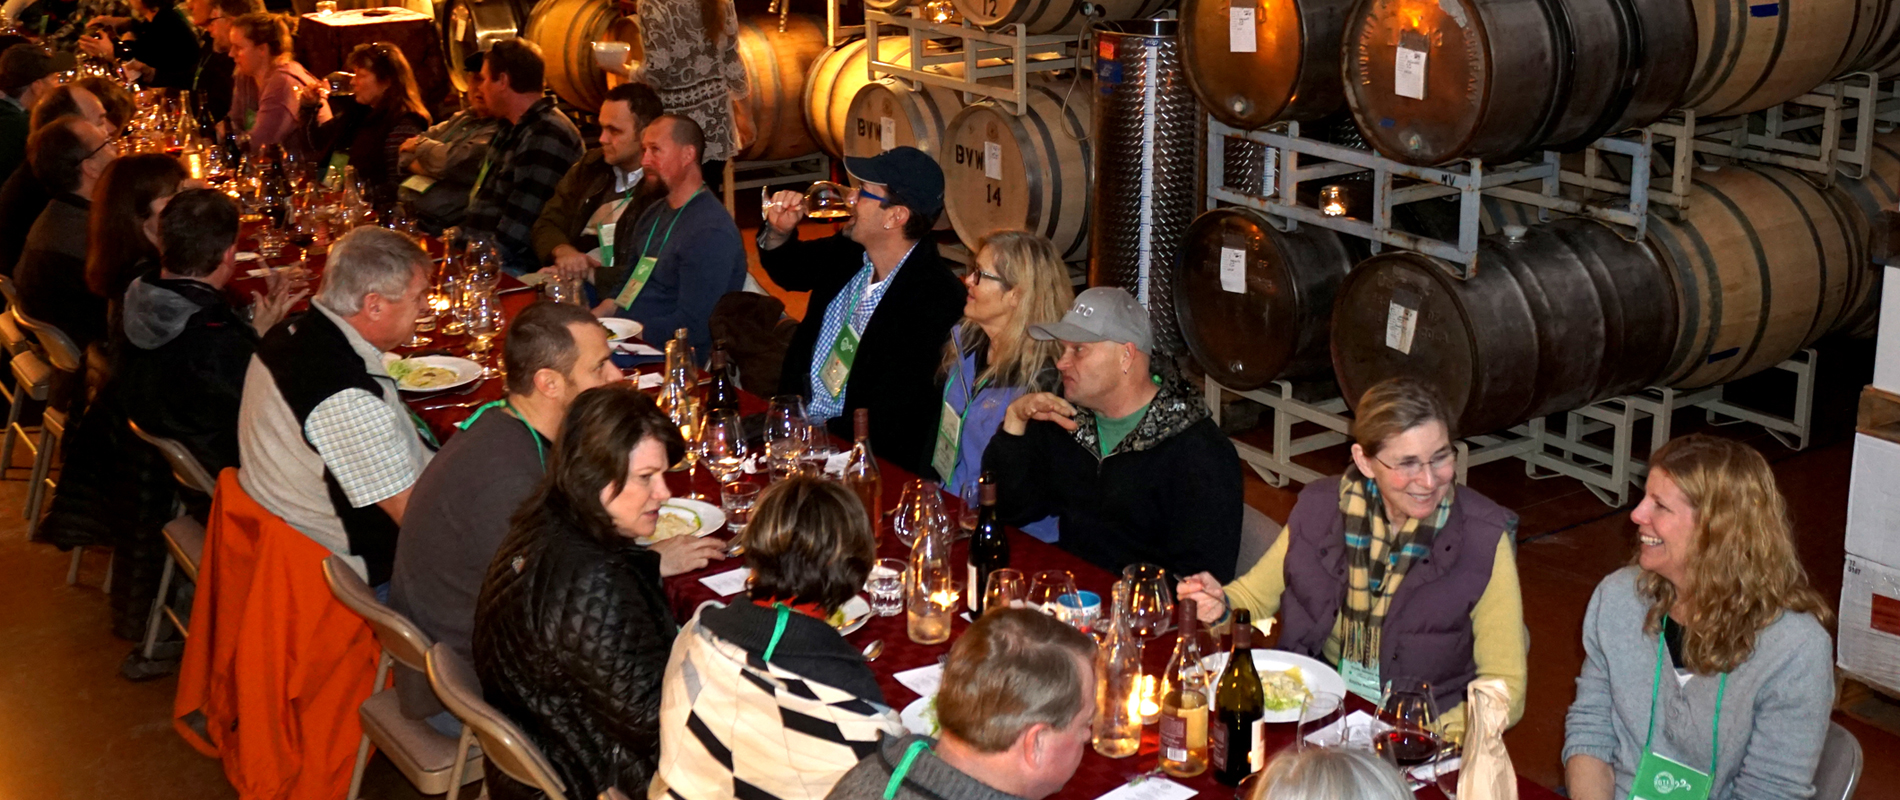 People seated for dinner in the barrel room of a winery